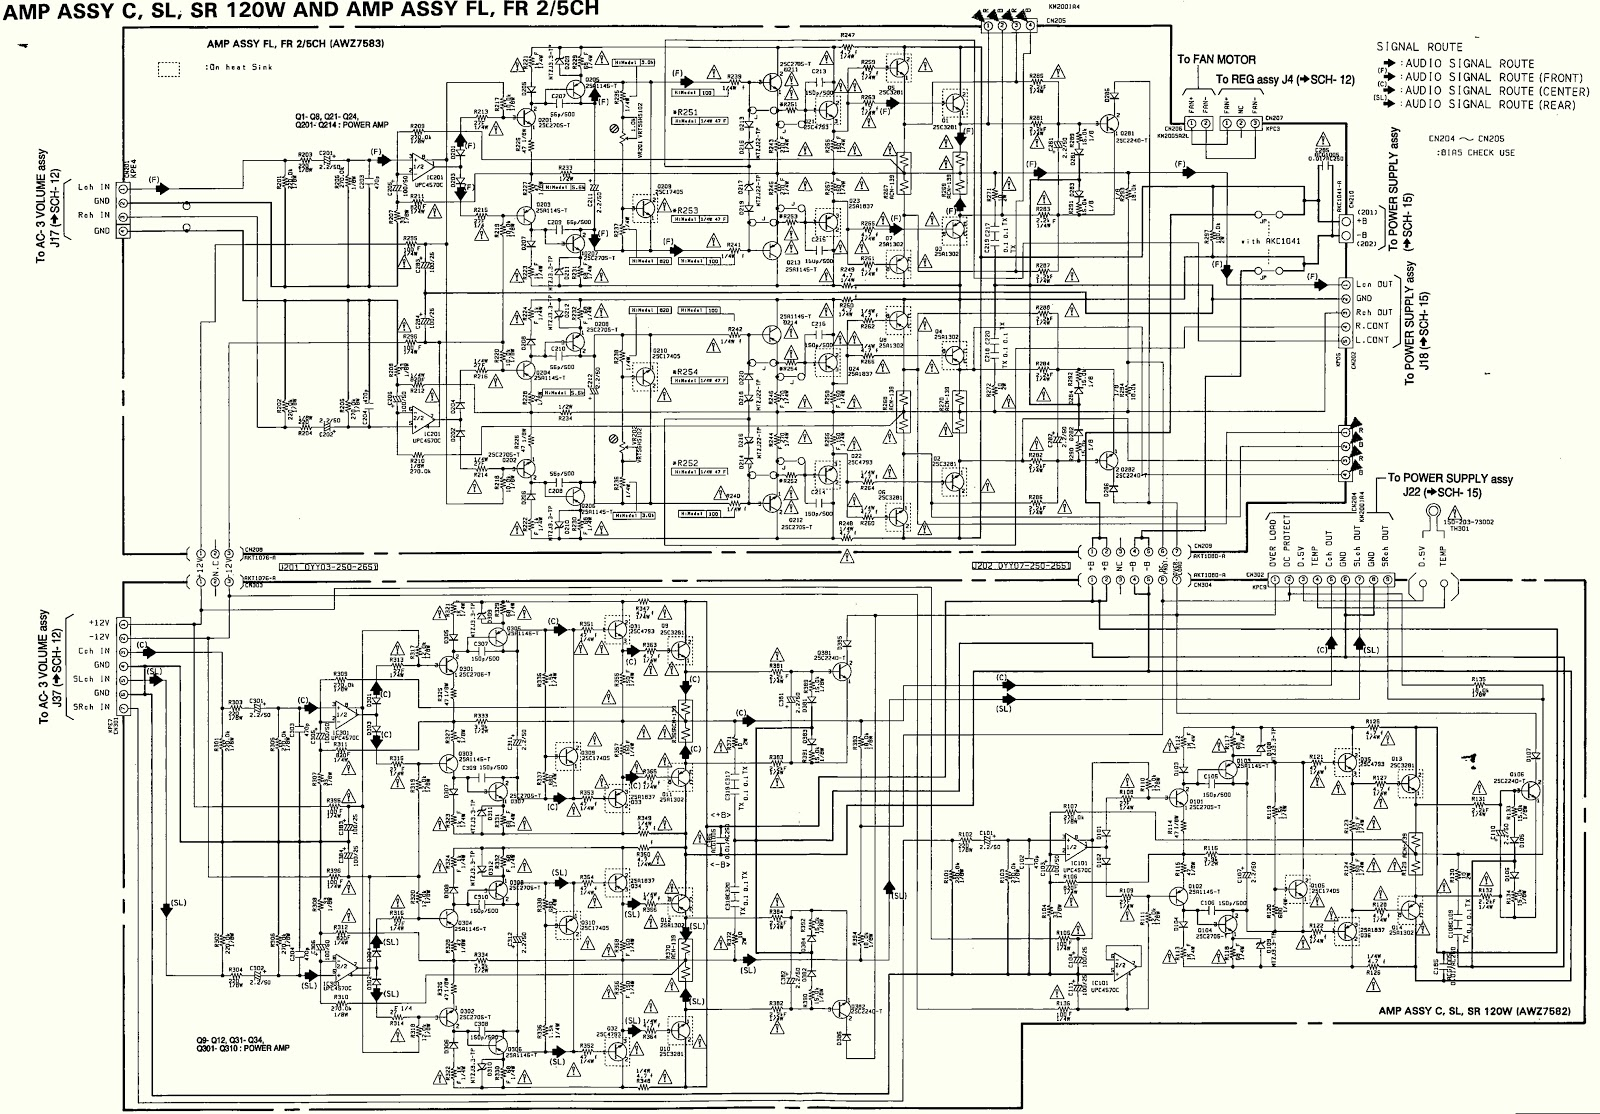 pioneer deh 24ub stereo wiring diagrams pioneer deh 73bt pioneer avh p4000dvd wiring schematic pioneer wiring harness schematic [ 1600 x 1114 Pixel ]